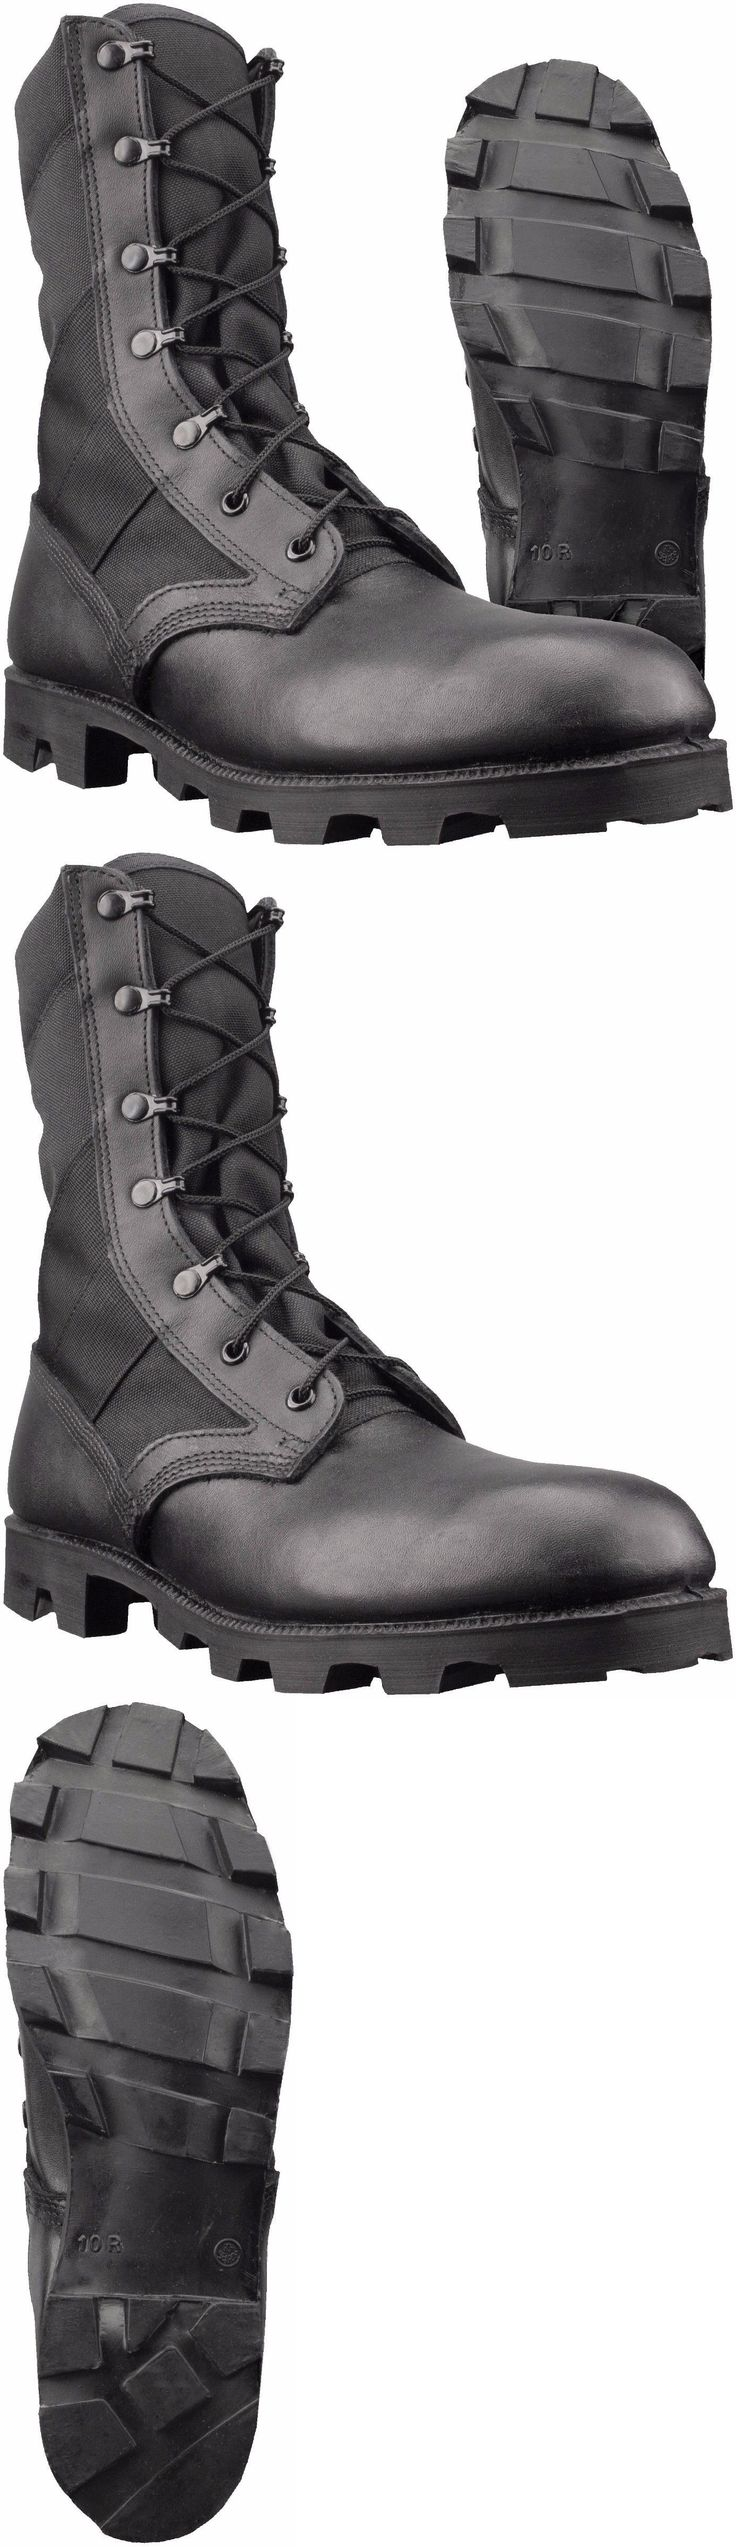 Tactical Footwear 177897: Altama Jungle Px 10.5 Inch Boot Black -> BUY IT NOW ONLY: $119 on eBay!